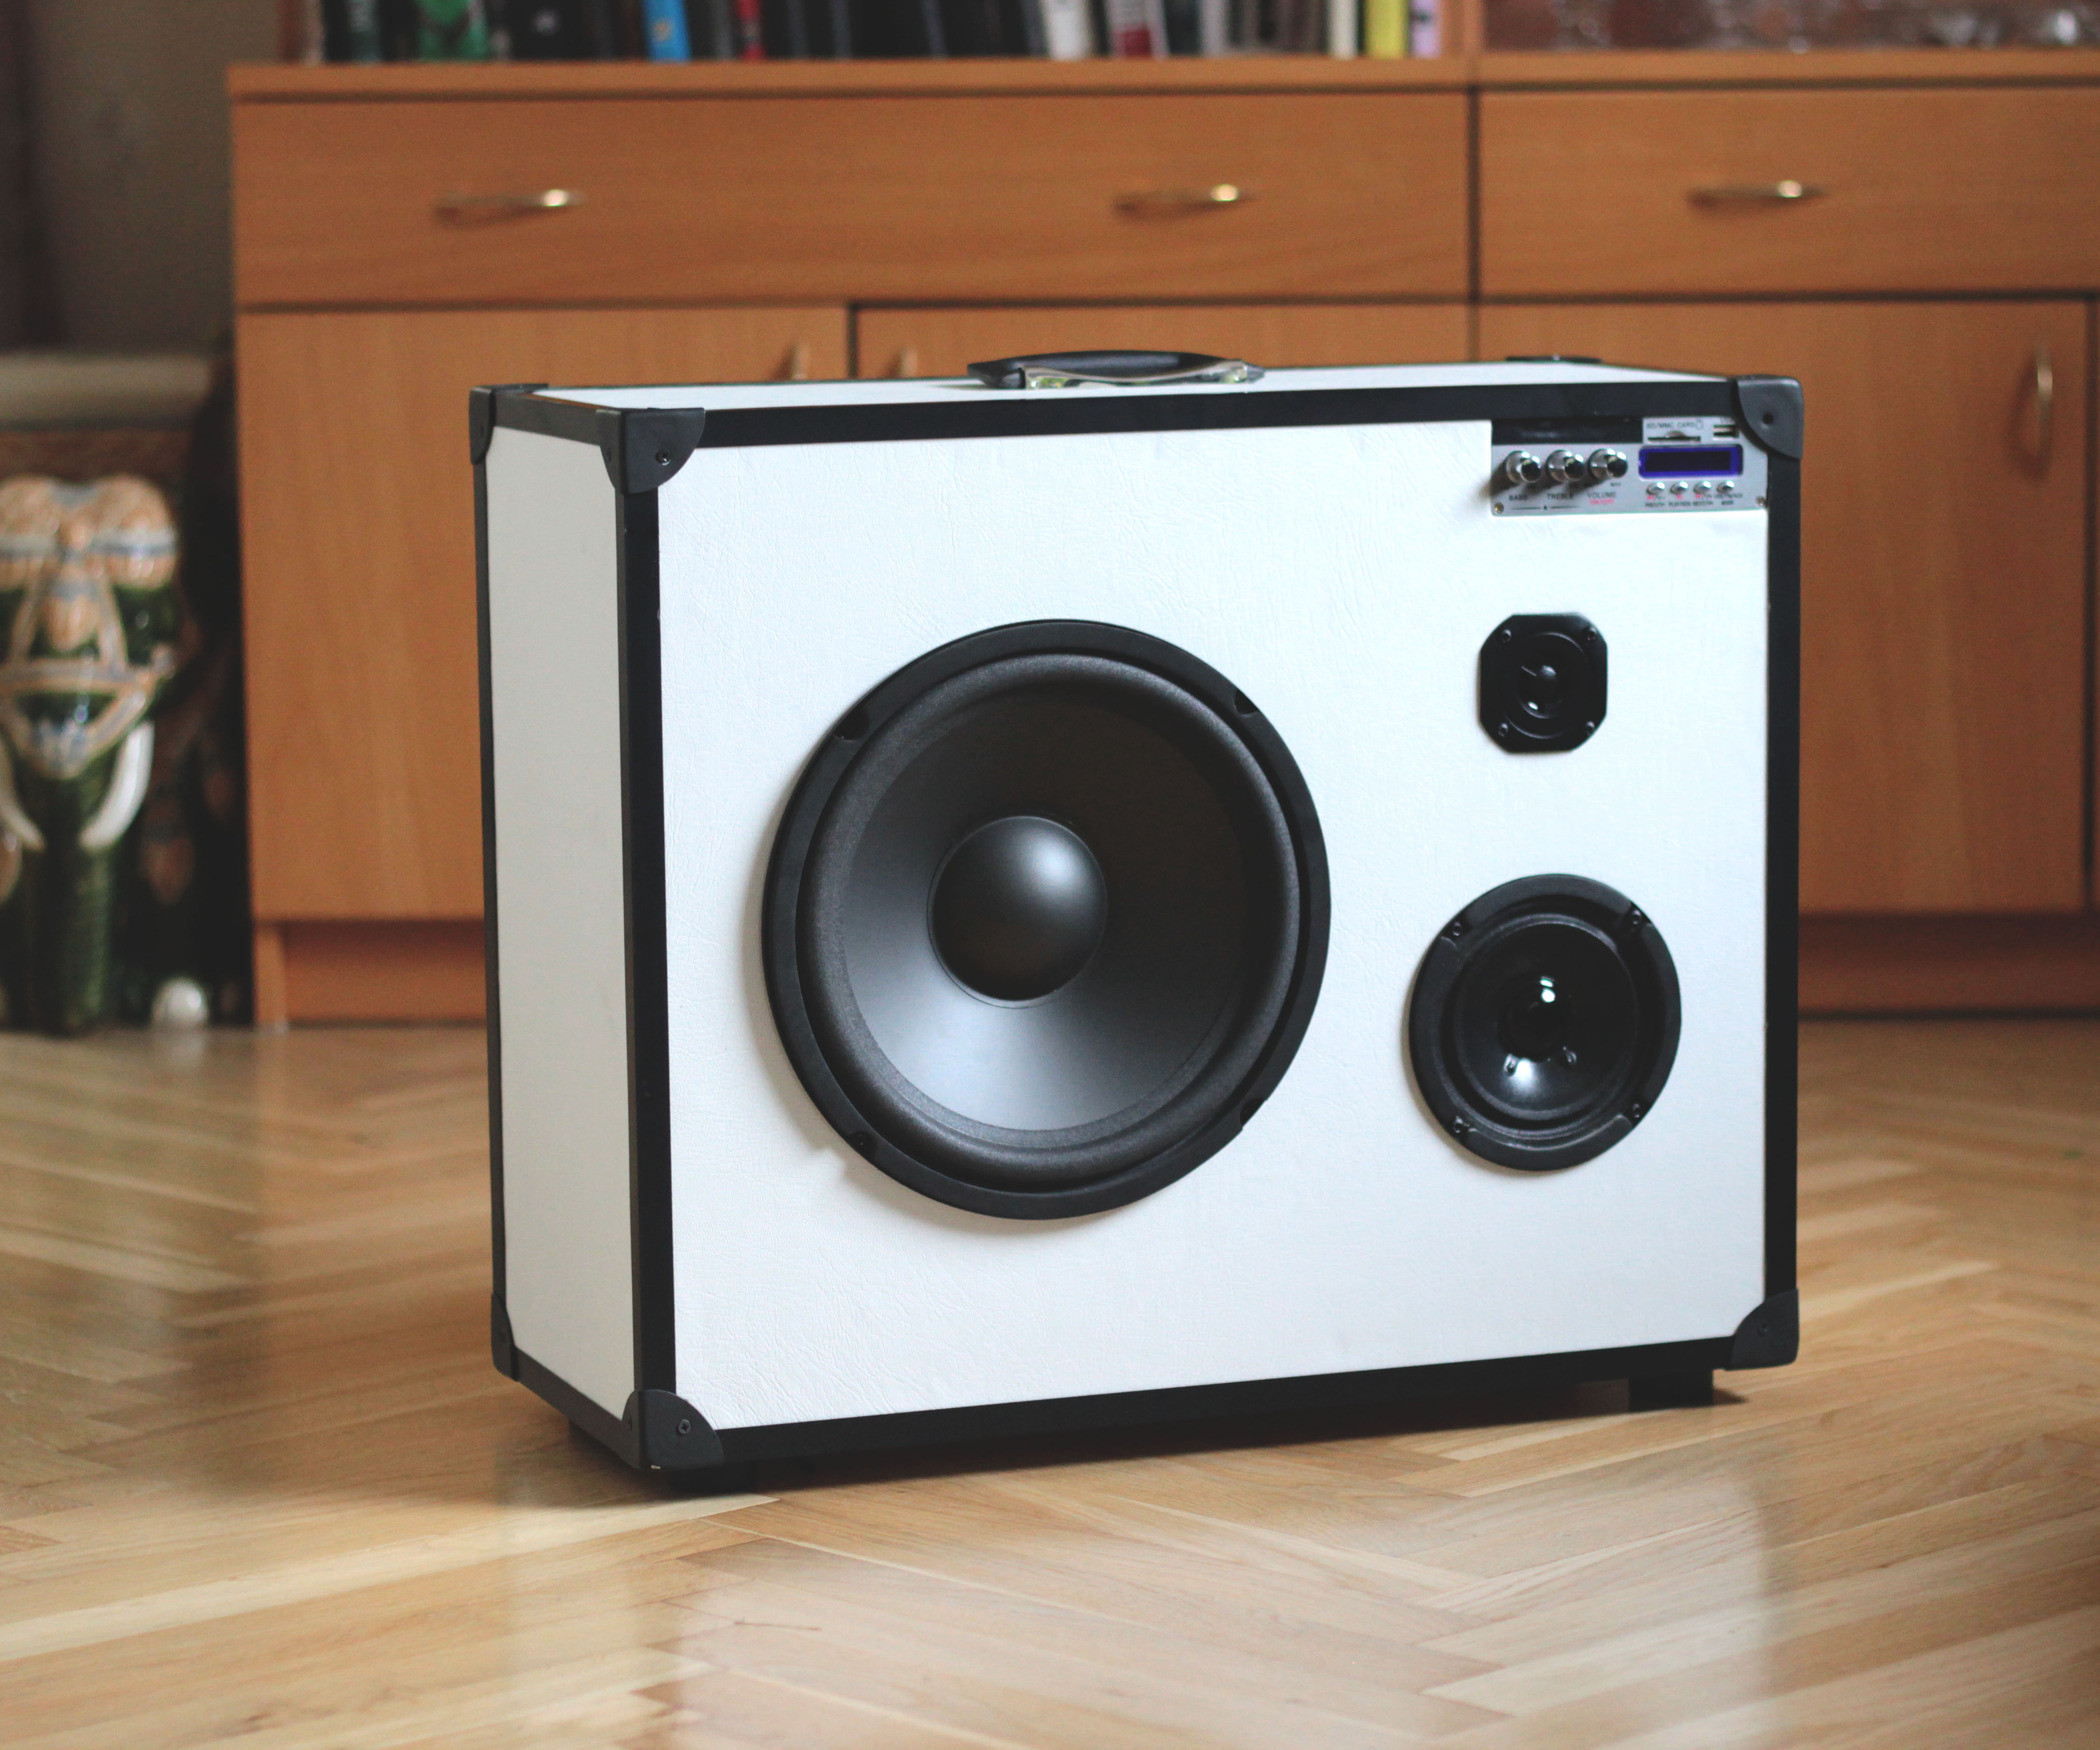 Best ideas about DIY Portable Speakers . Save or Pin Portable 3 way hifi speaker boomcase Now.